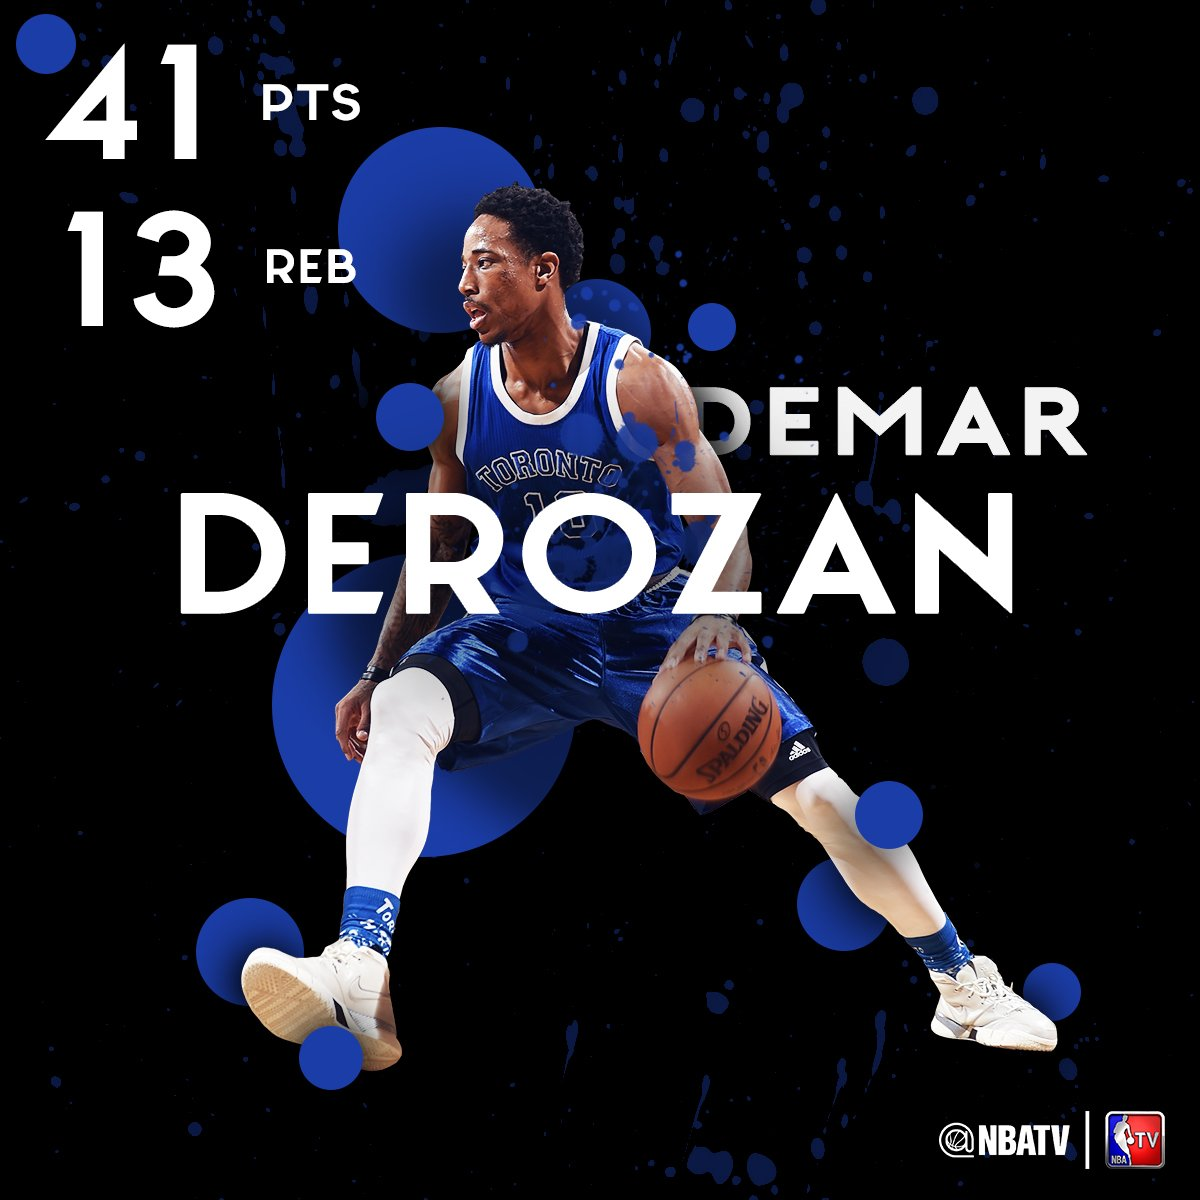 DeMar DeRozan goes OFF for a season-high 41 PTS in the @raptors 114-106 win over the Celtics. ������ https://t.co/bICJxs9qkx